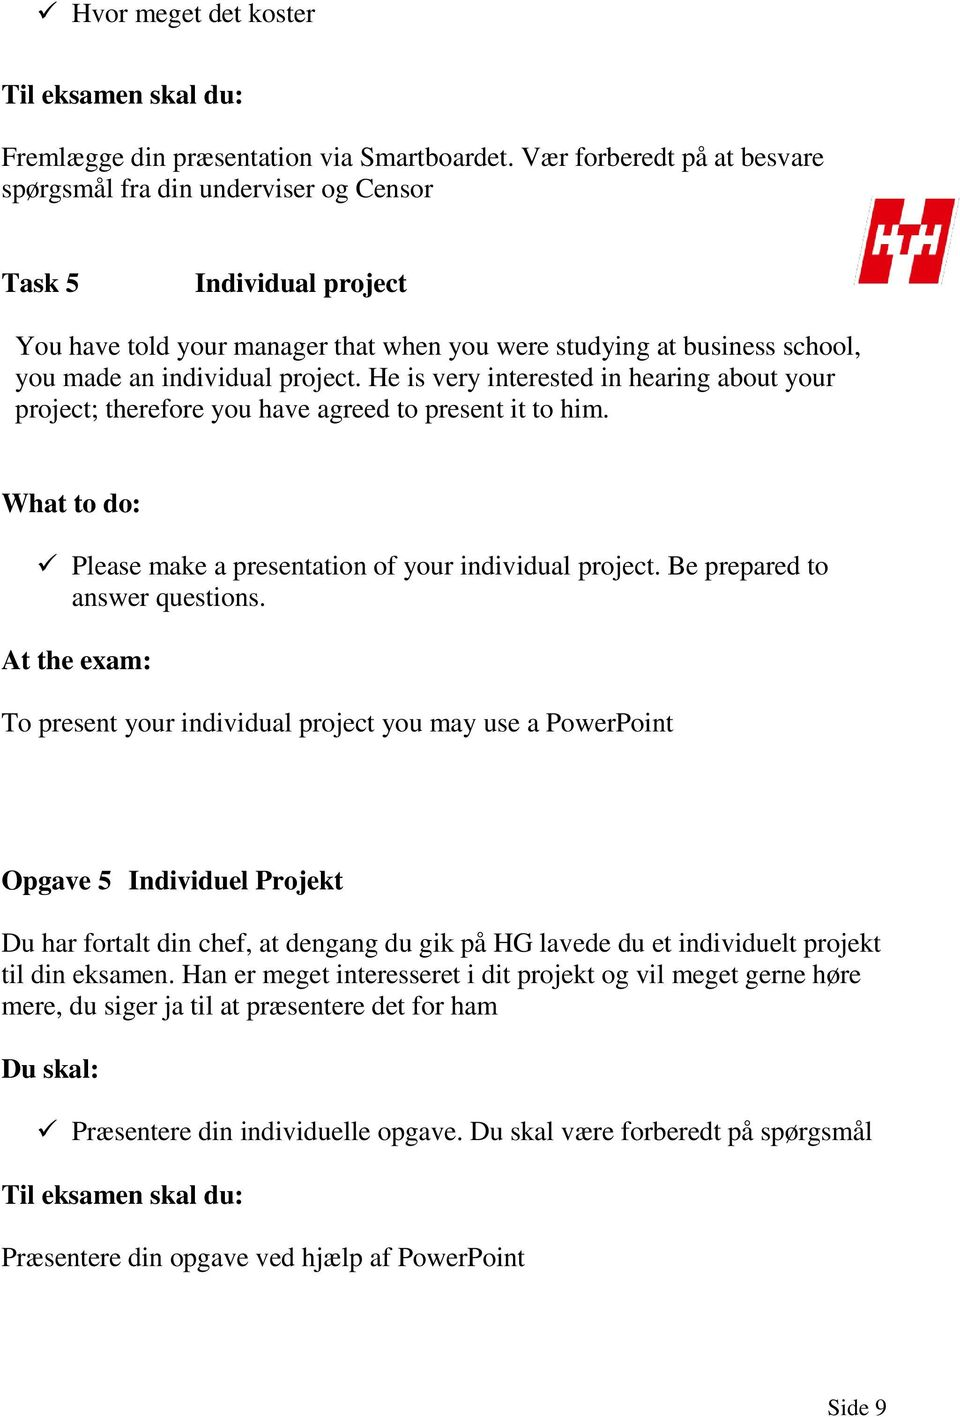 He is very interested in hearing about your project; therefore you have agreed to present it to him. What to do: Please make a presentation of your individual project. Be prepared to answer questions.